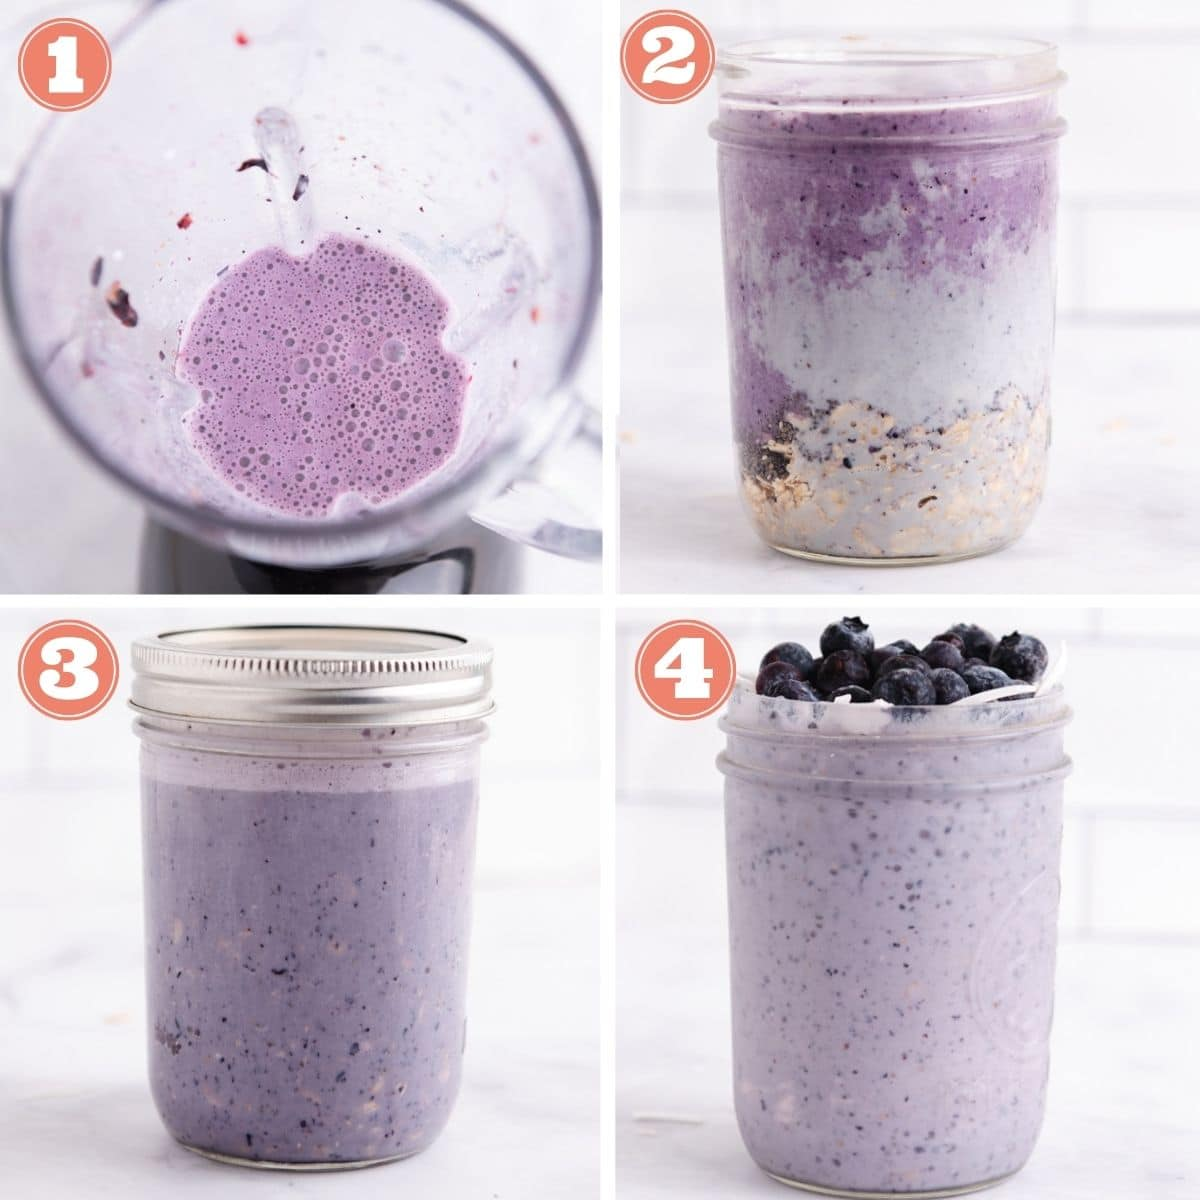 Steps 1 through 4 to make overnight oats